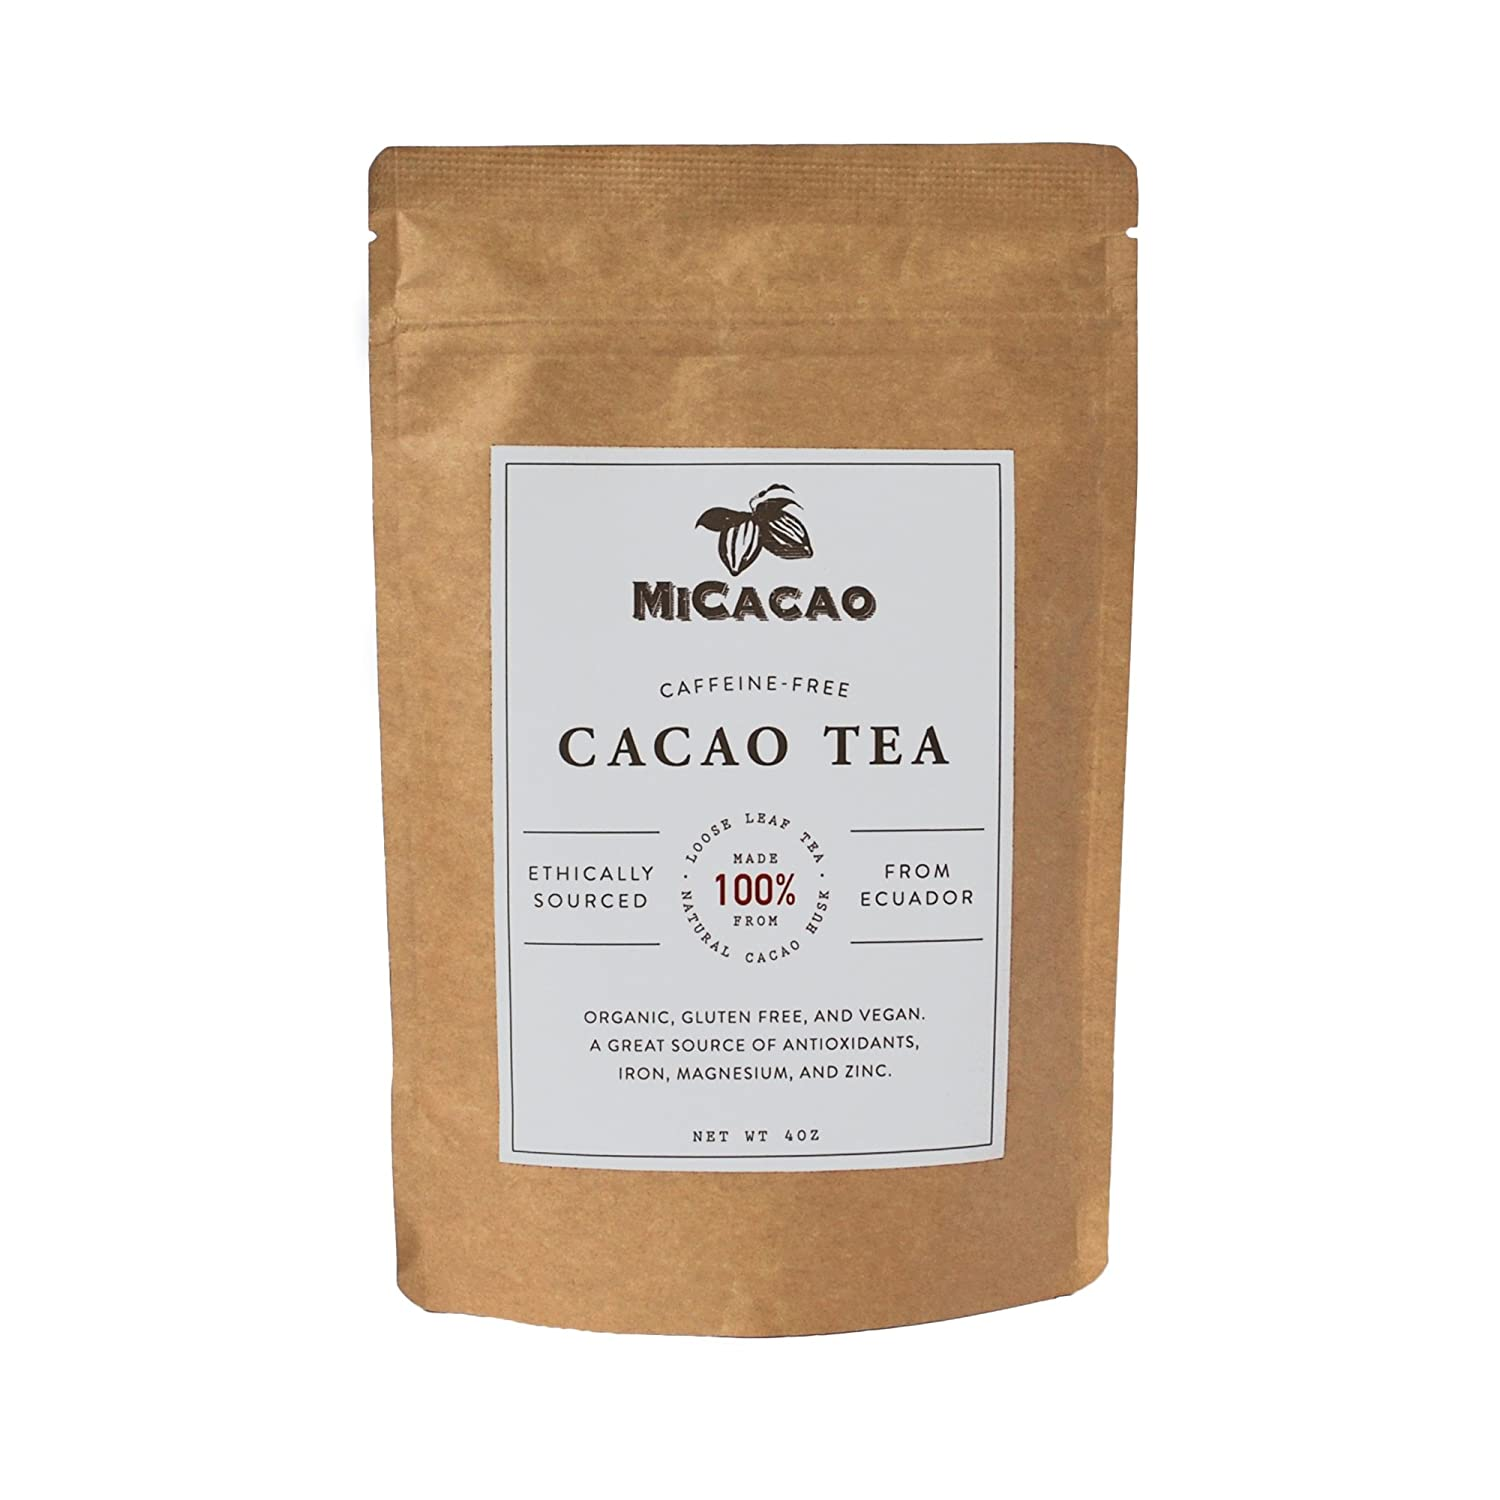 Cacao Tea, Loose MiCacao SYNCHKG111965